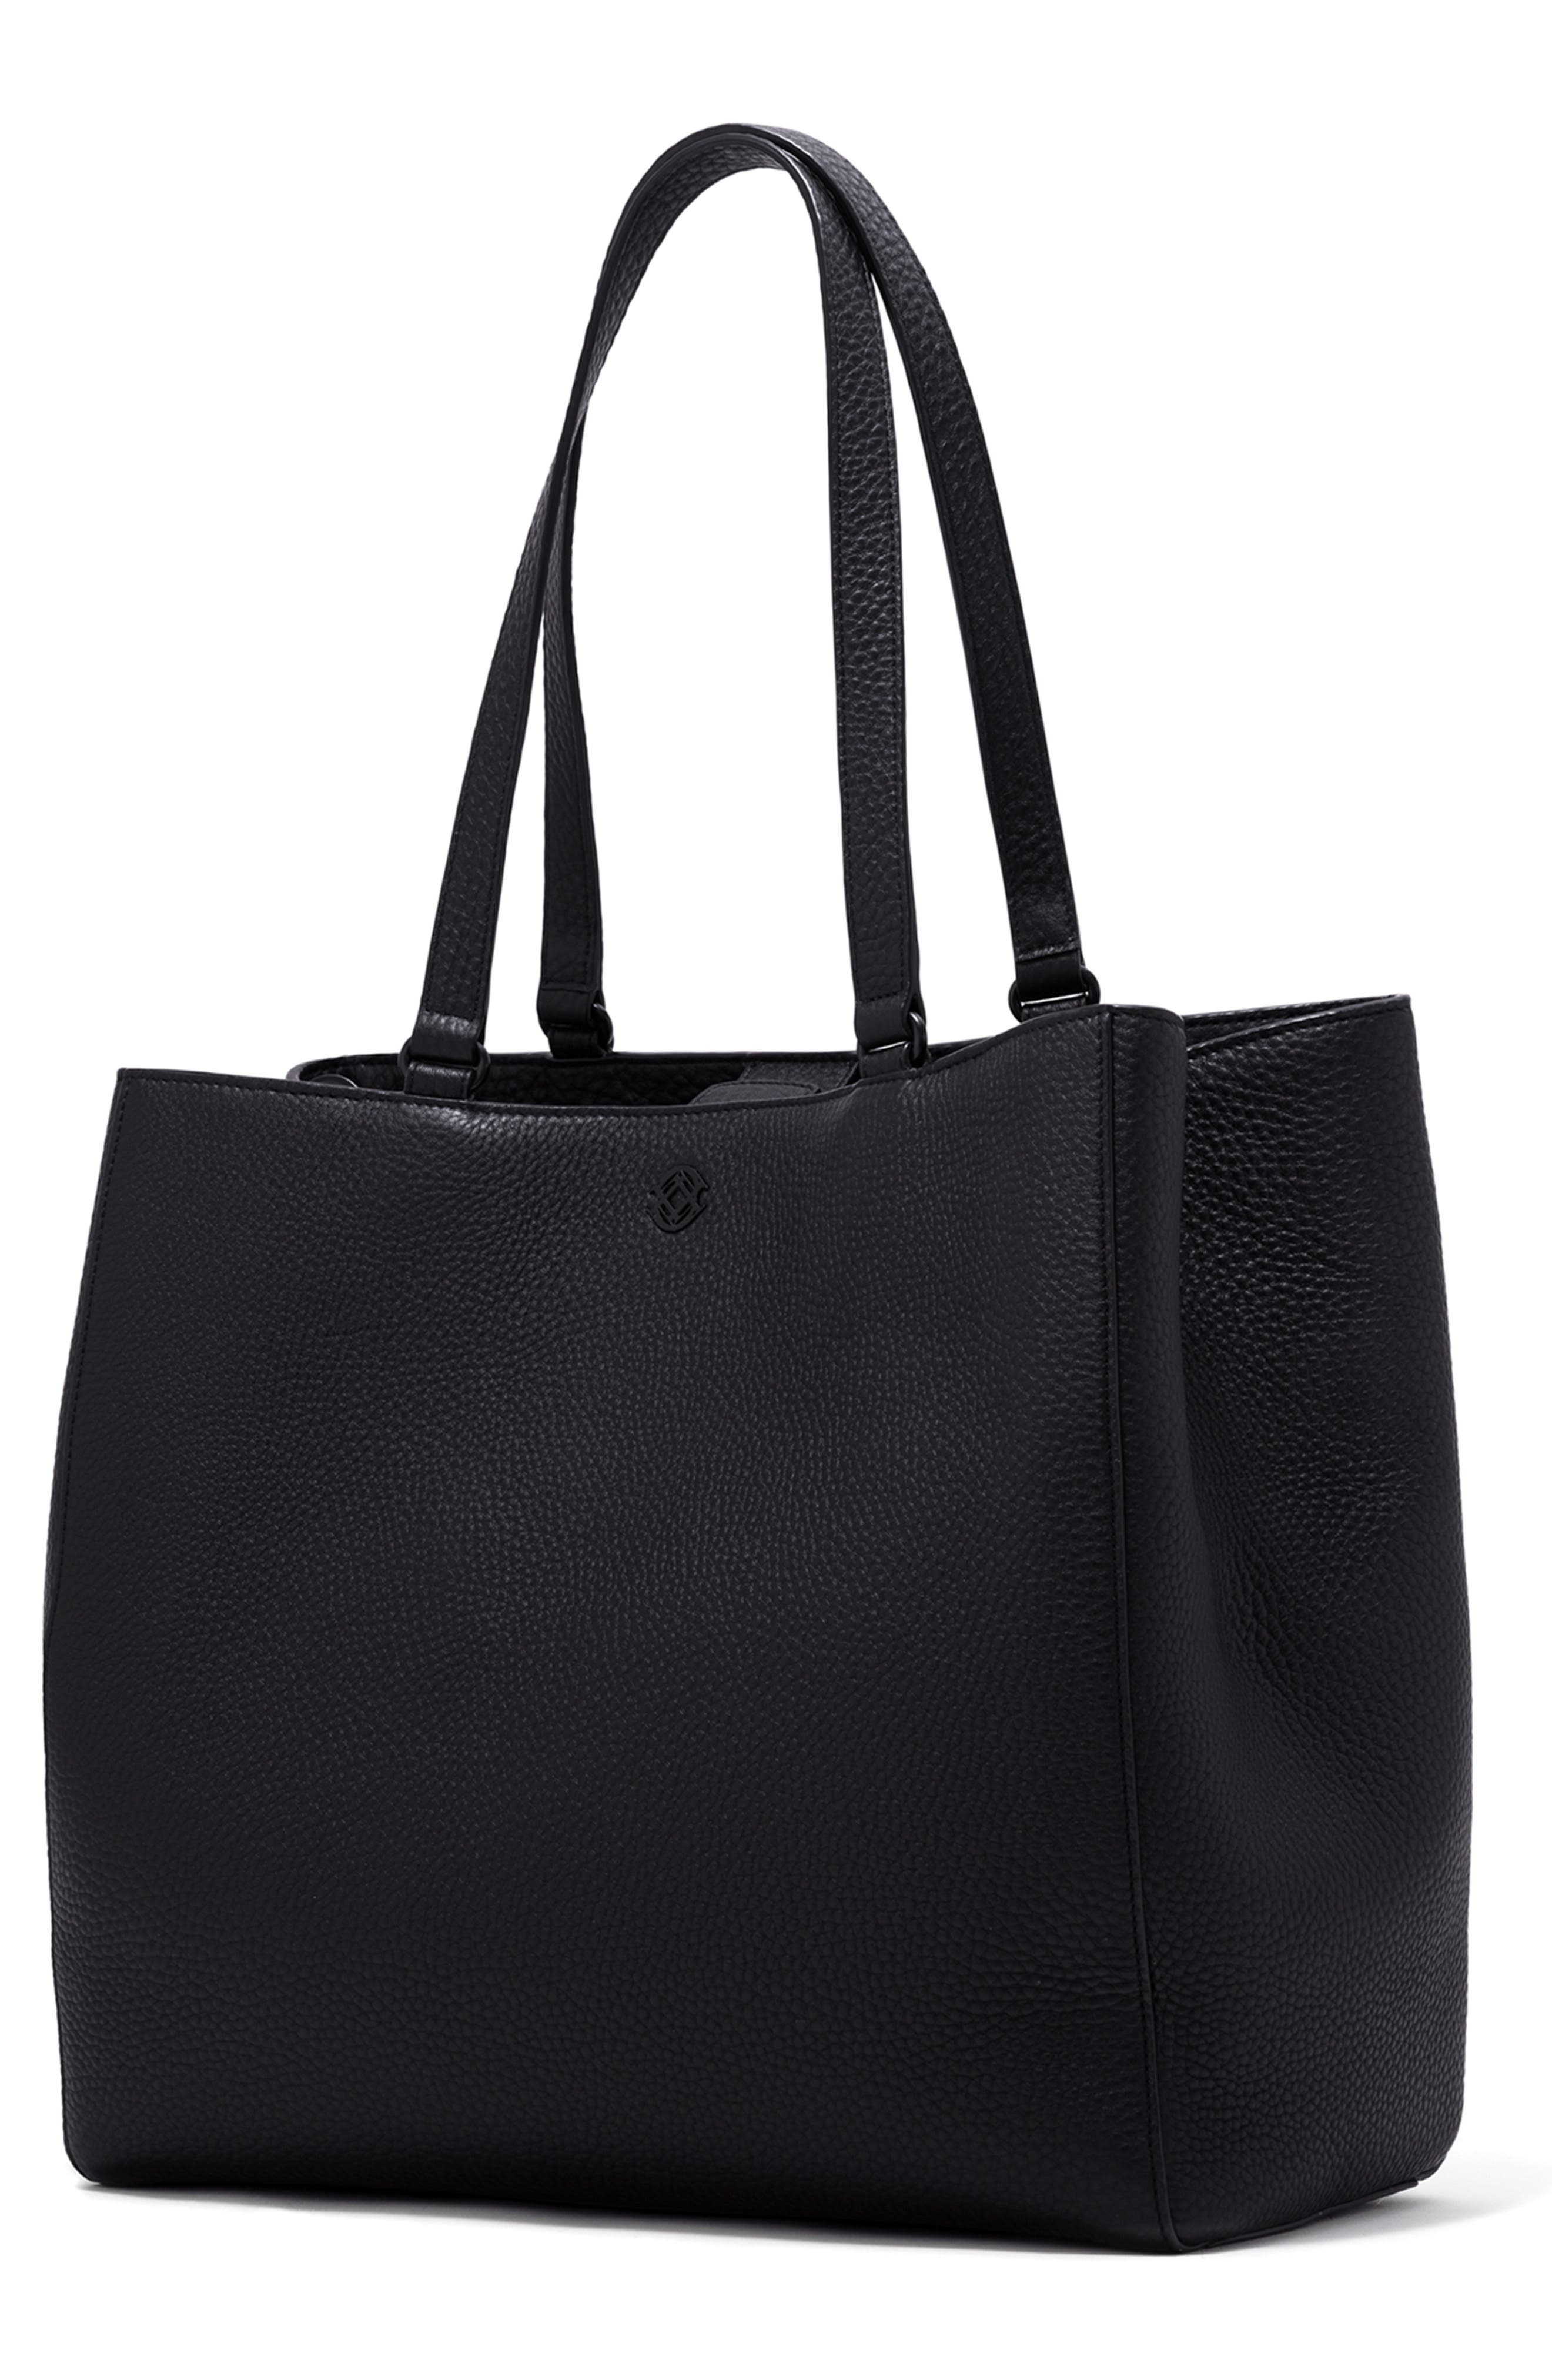 DAGNE DOVER, Large Allyn Leather Tote, Alternate thumbnail 6, color, ONYX